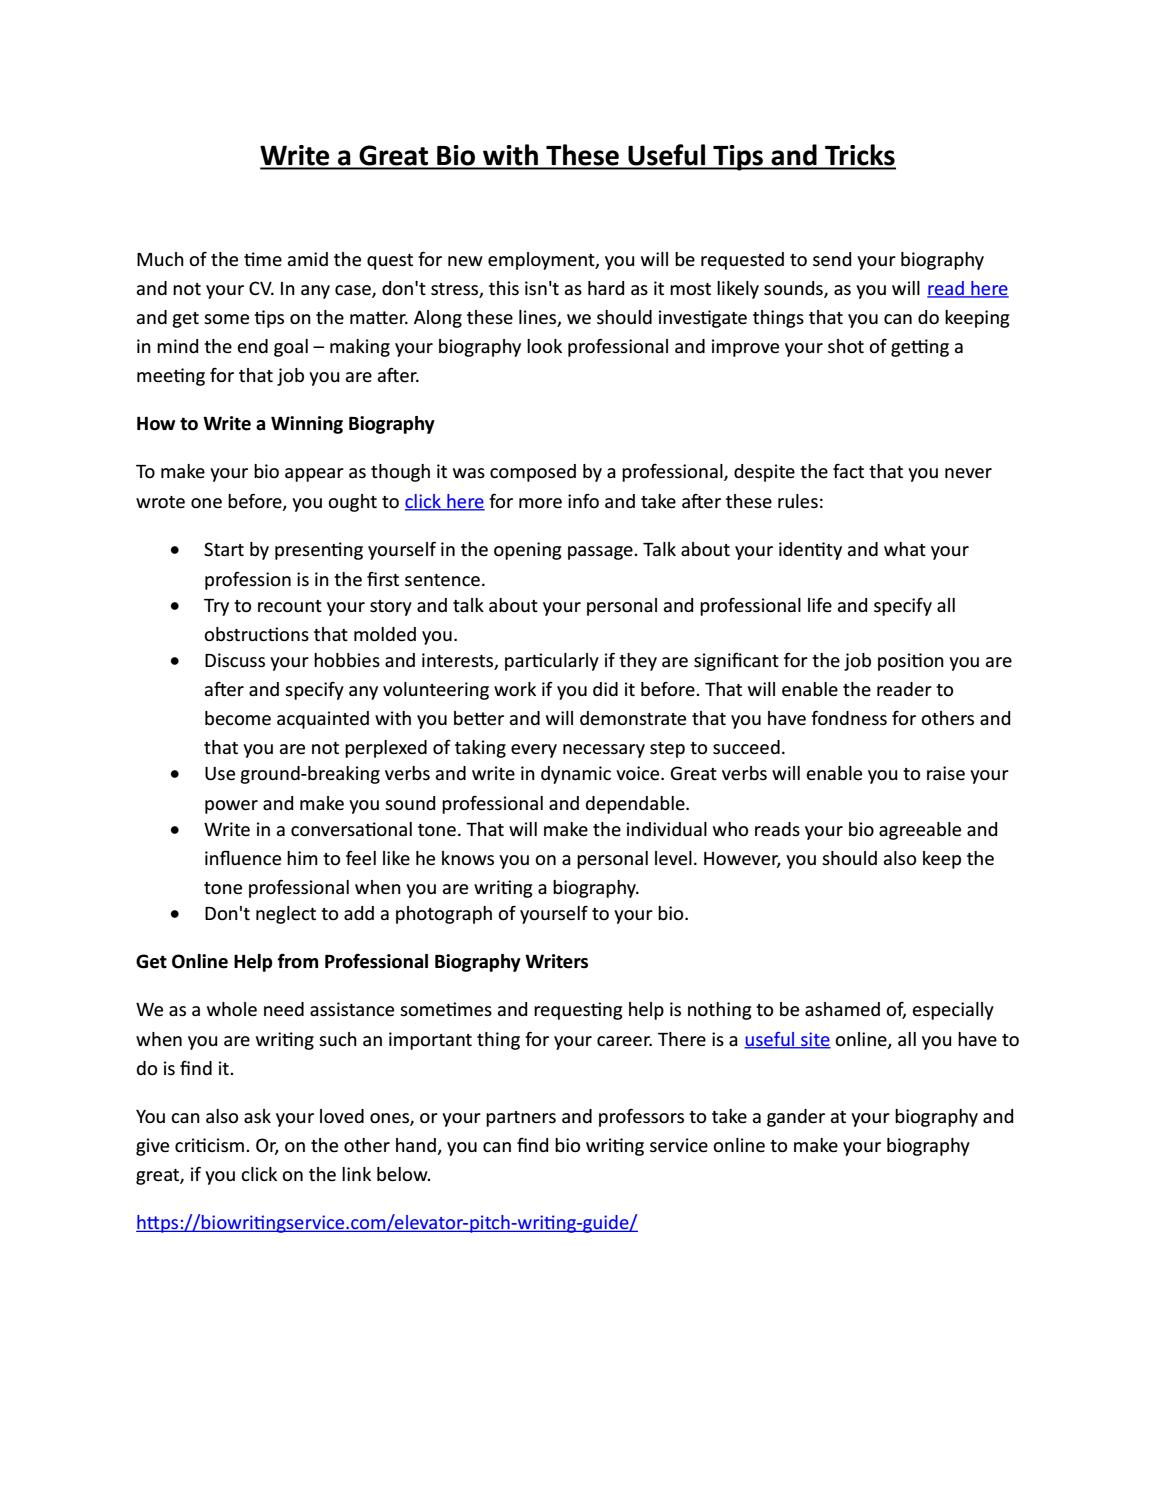 personal essay examples for high school examples of good essays in  write a great bio with these useful tips and tricks by bio writing thesis  statement for descriptive essay write a great bio with these useful tips  and